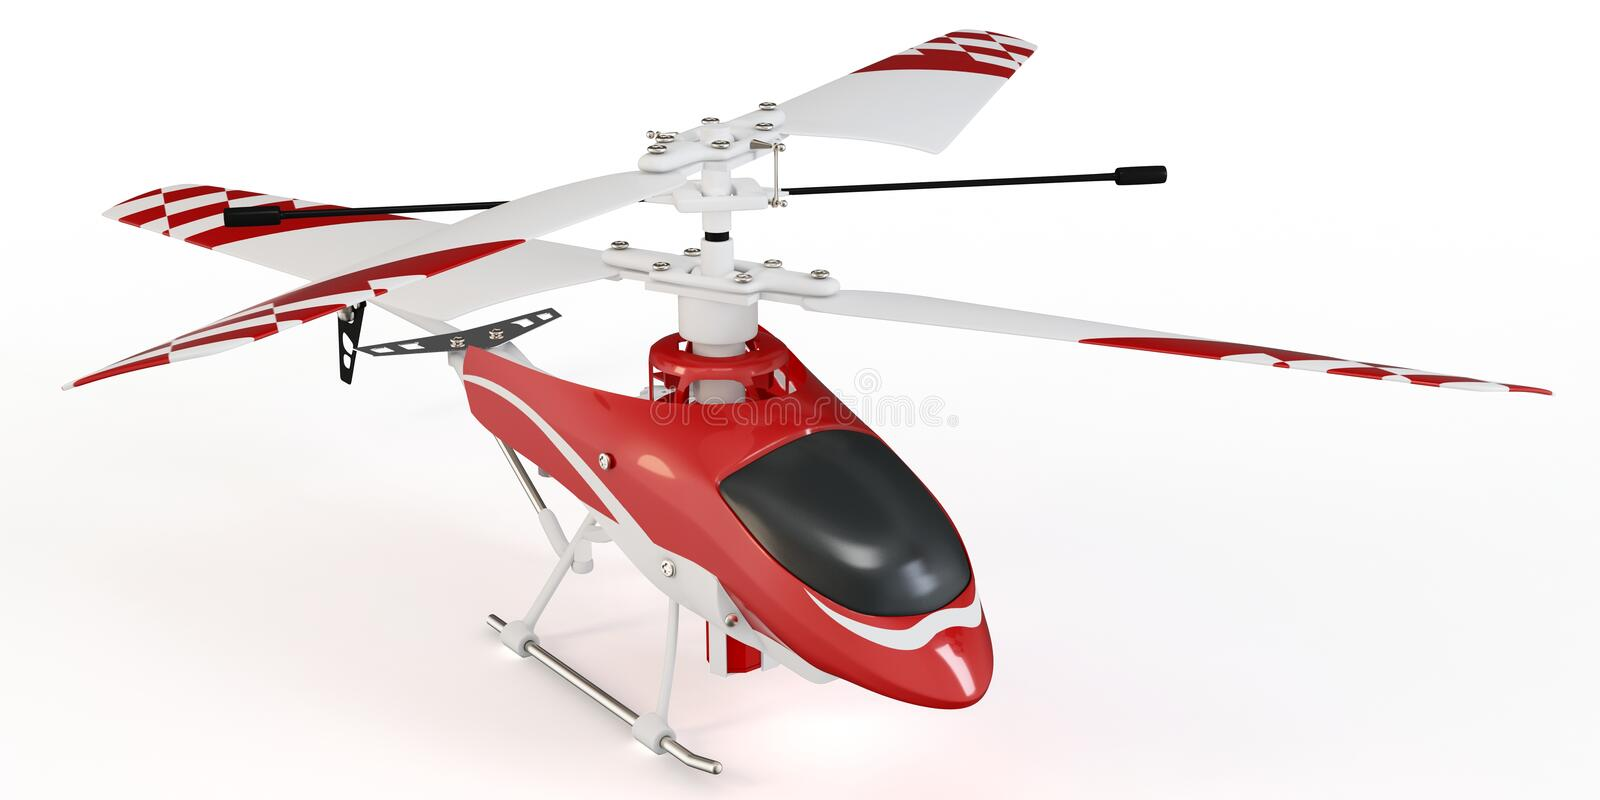 3d radio controlled helicopter model royalty free illustration